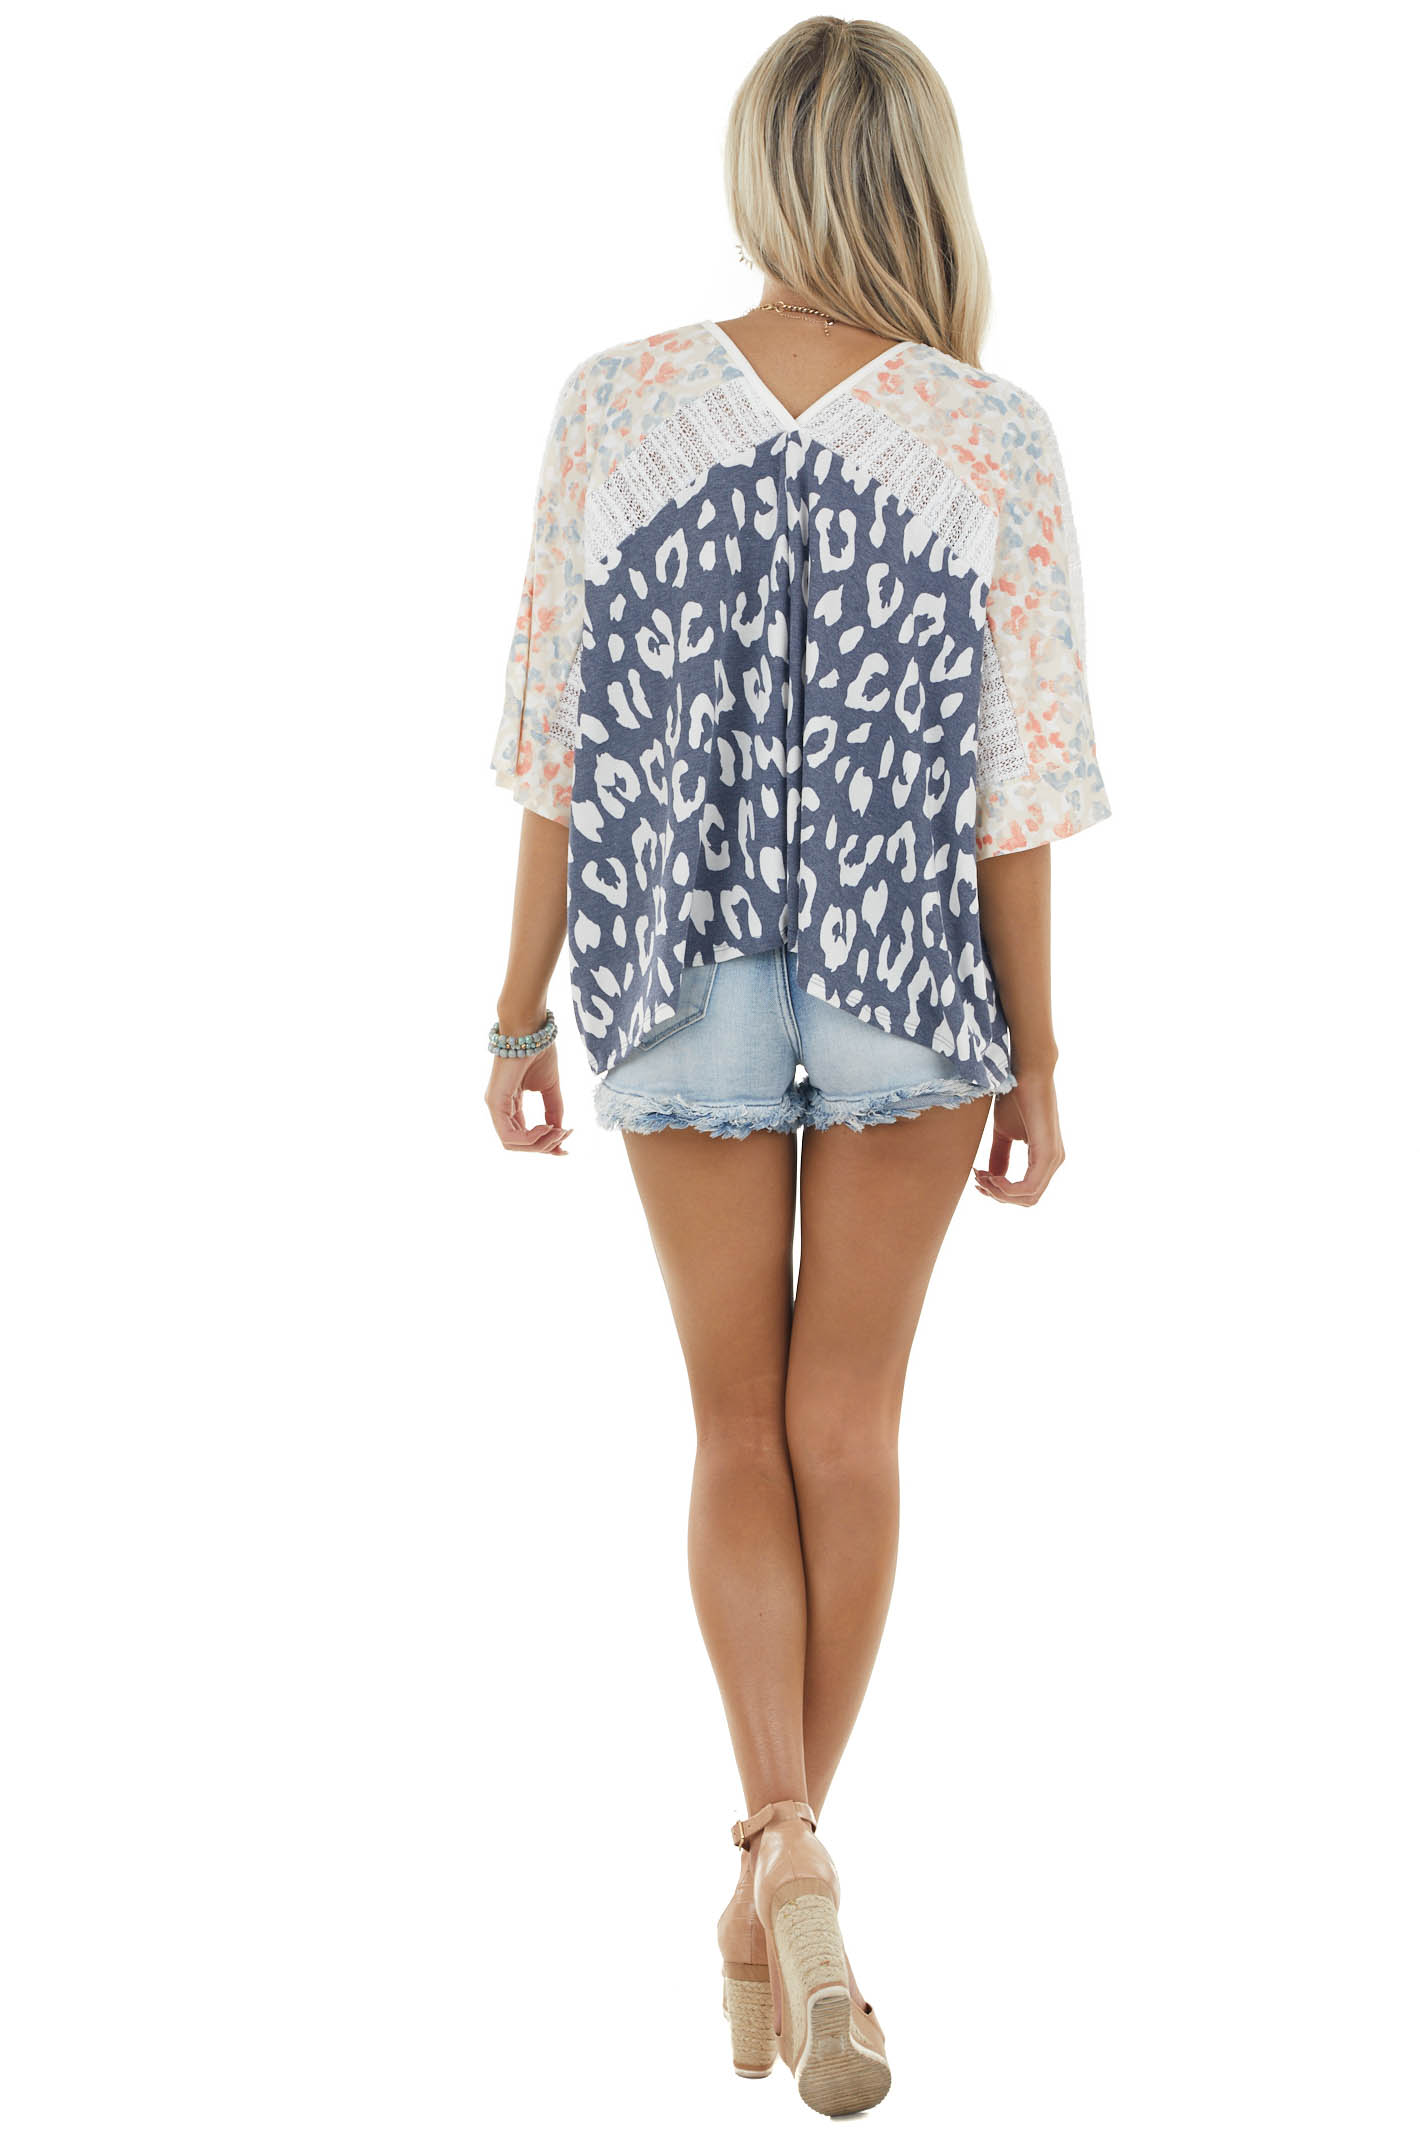 Navy Multicolored Leopard Oversized Loose Knit Contrast Top